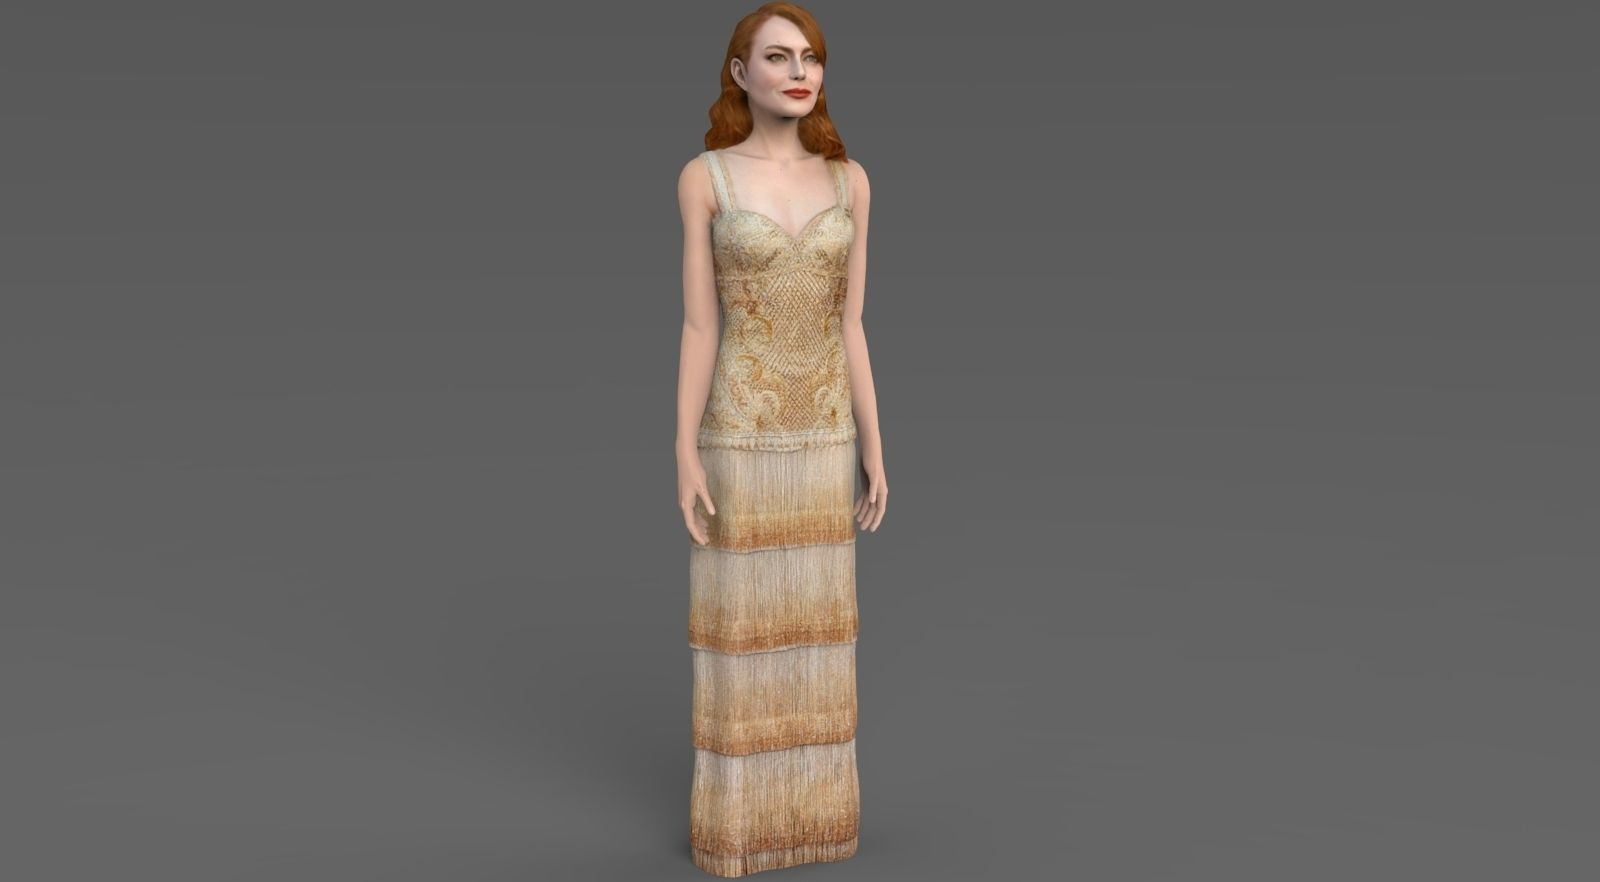 Emma Stone ready for full color 3D printing